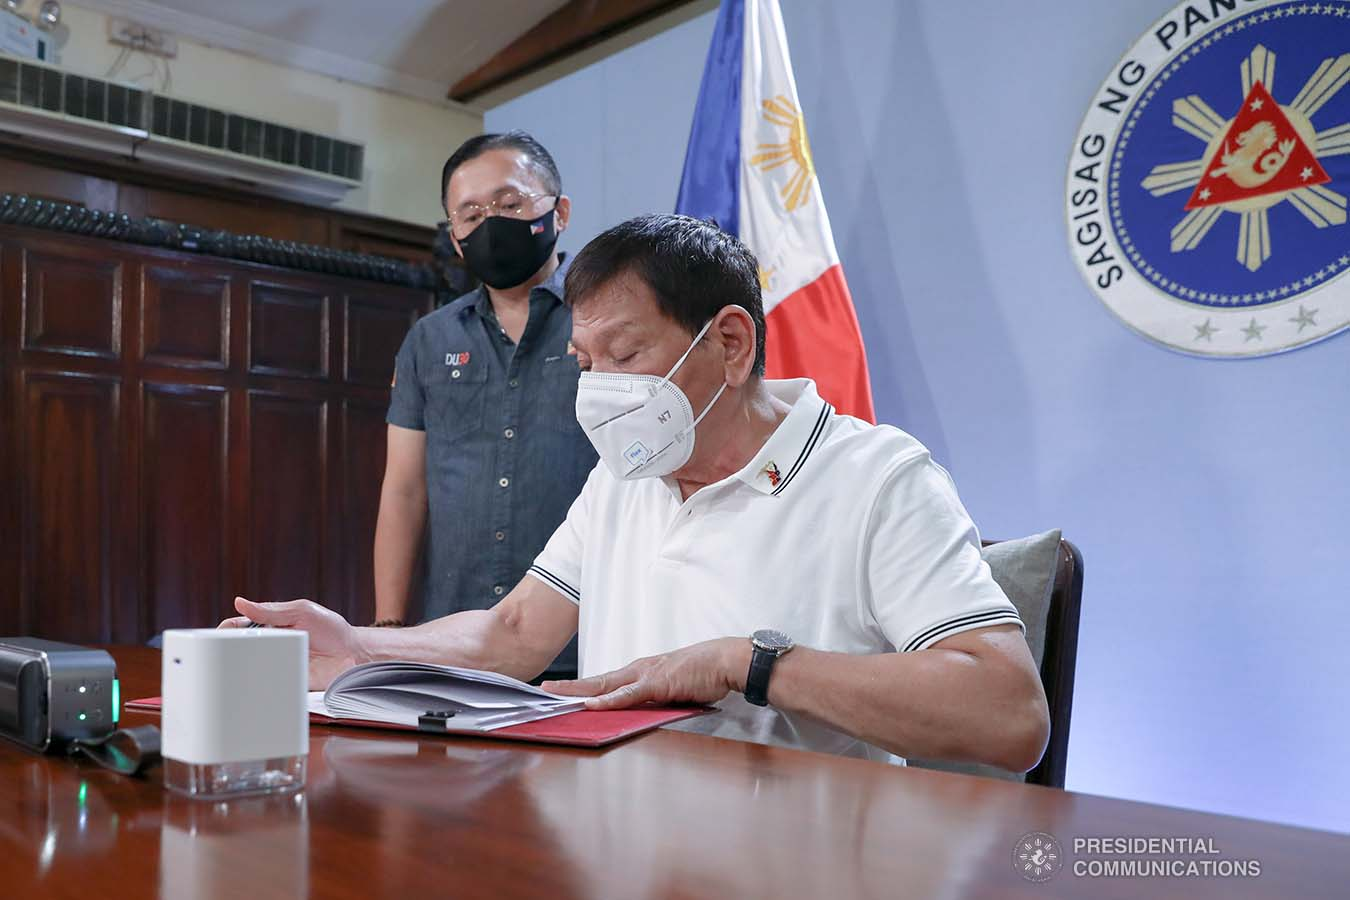 President Rodrigo Roa Duterte signs into law the Coronavirus Disease 2019 (COVID-19) Vaccination Program Act of 2021 at the Malacañang Golf (Malago) Clubhouse in Malacañang Park, Manila on February 26, 2021. The said law would expedite the procurement and administration of vaccines for the protection against COVID-19. It also covers the creation of an indemnity fund to cover compensation for those who would experience serious adverse effects to the vaccine. The President is accompanied by Senator Christopher Lawrence Go. KARL NORMAN ALONZO/ PRESIDENTIAL PHOTO